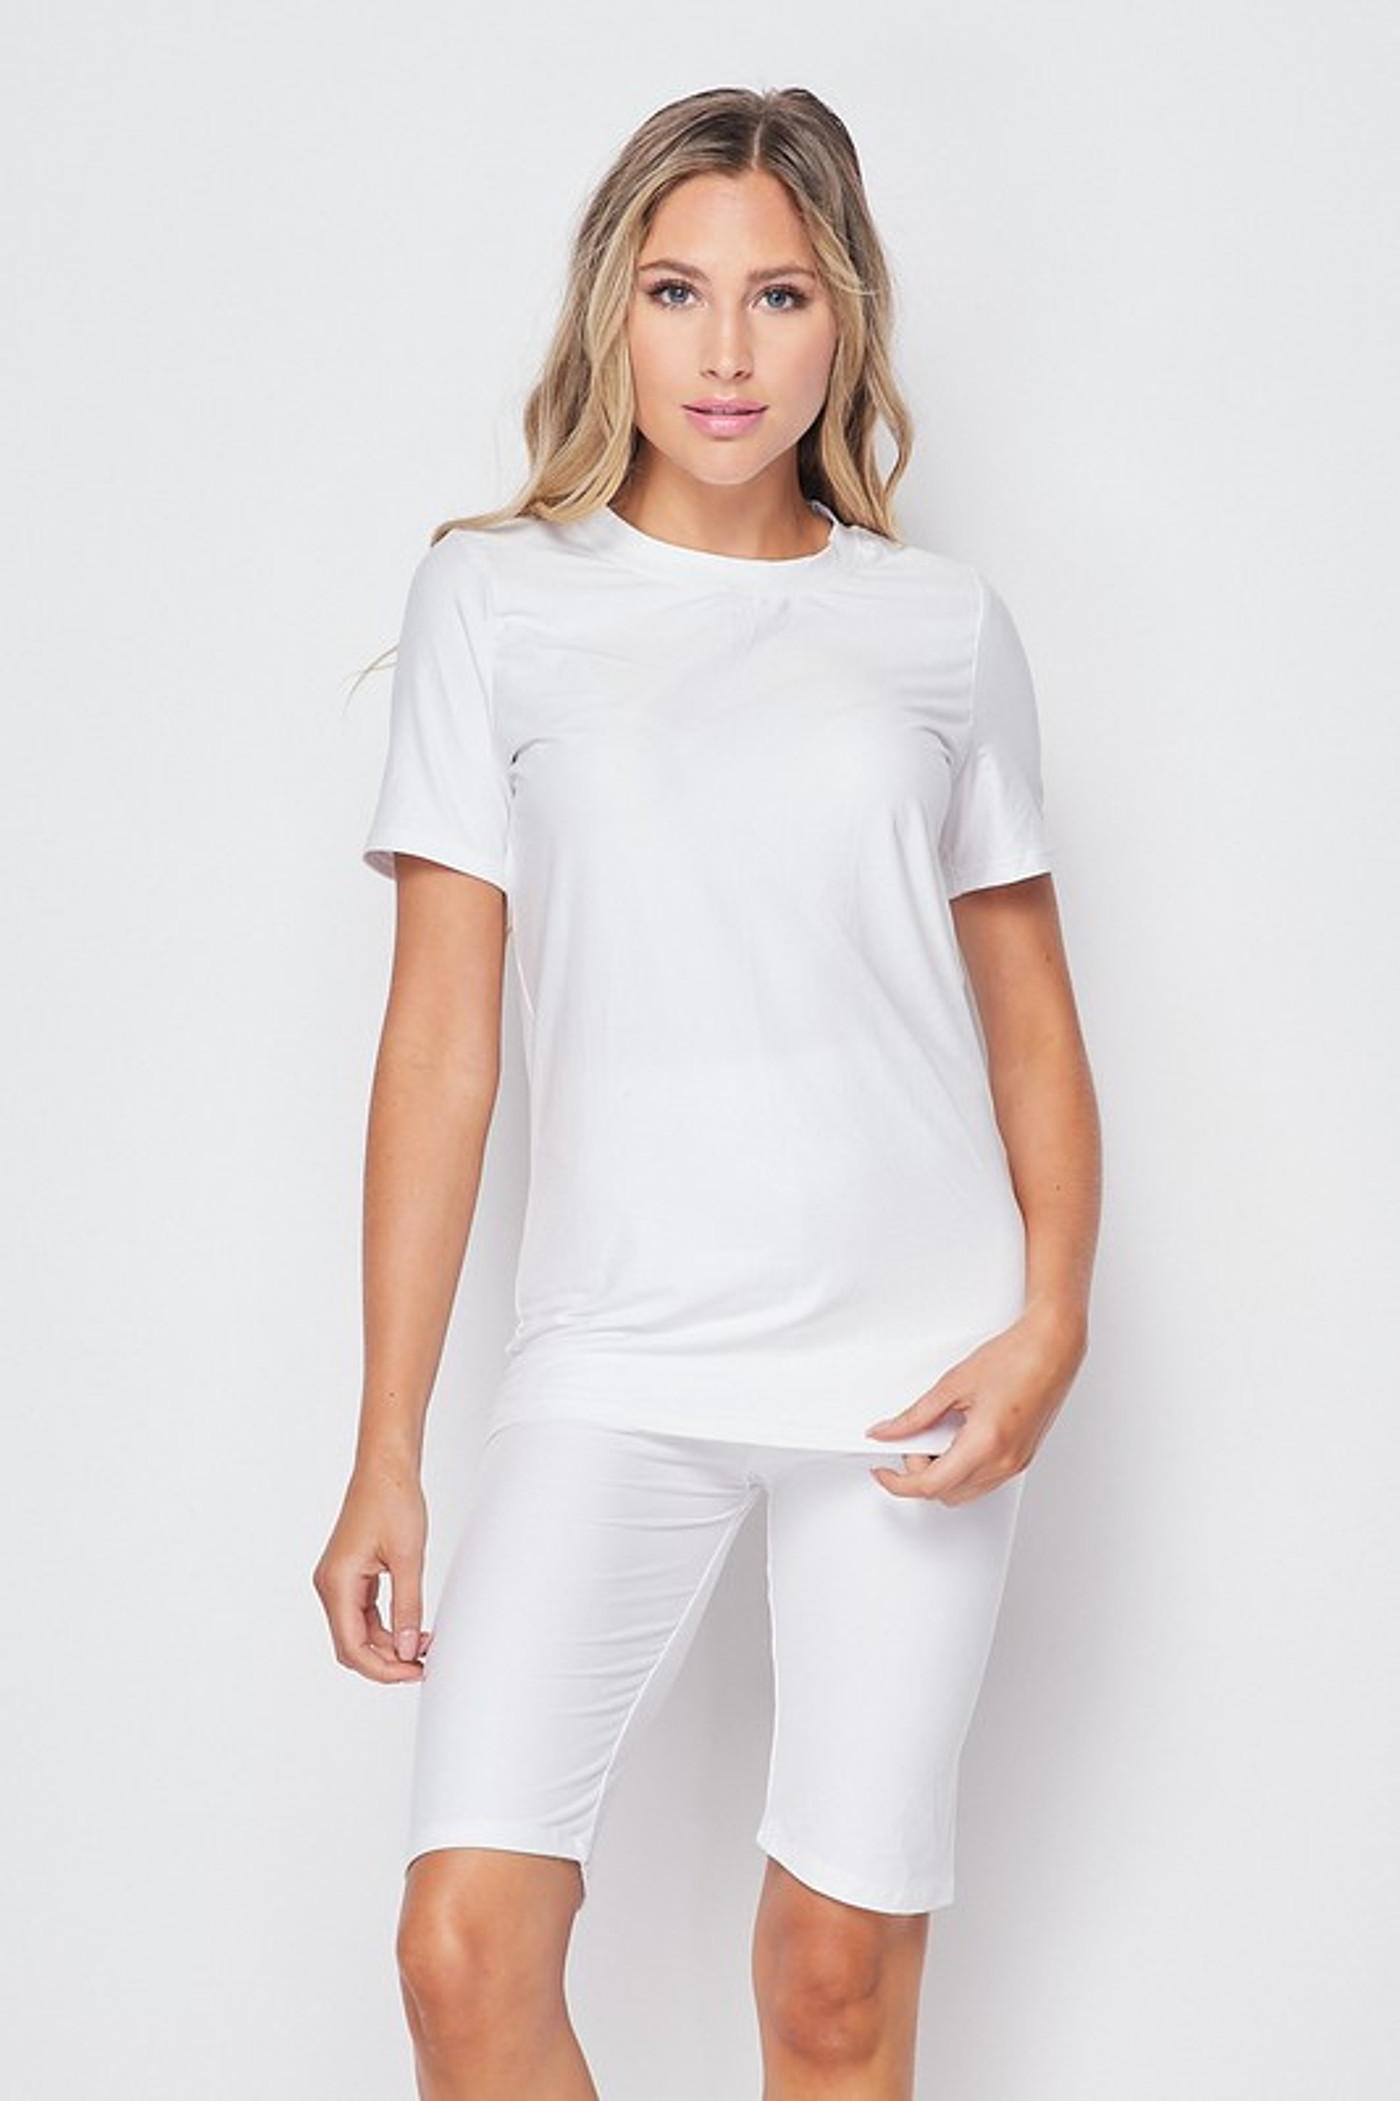 White Buttery Soft Basic Solid Biker Shorts and T-Shirt Set